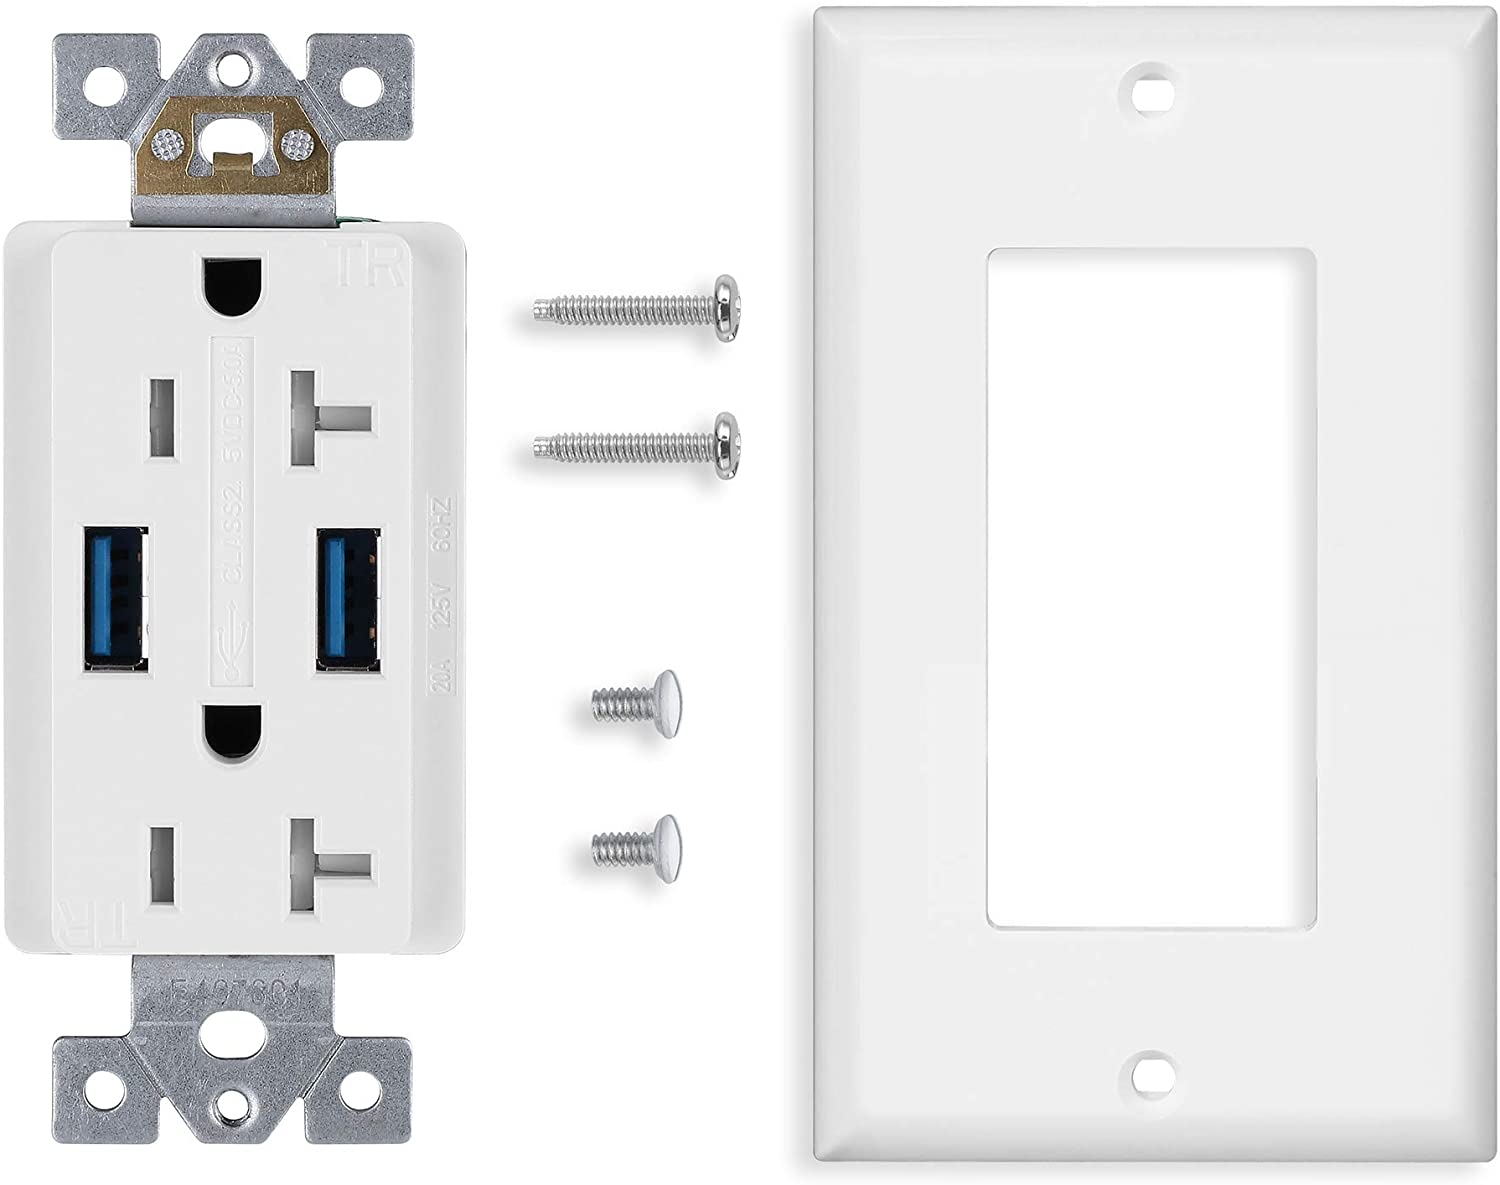 Compatible with Apple iPhone UL Listed LG 5.0A Dual High Speed USB Wall Outlet Charger 4 Pack 15A Tamper-Resistant Receptacle with White Wall Plate HTC Smartphone Samsung Galaxy